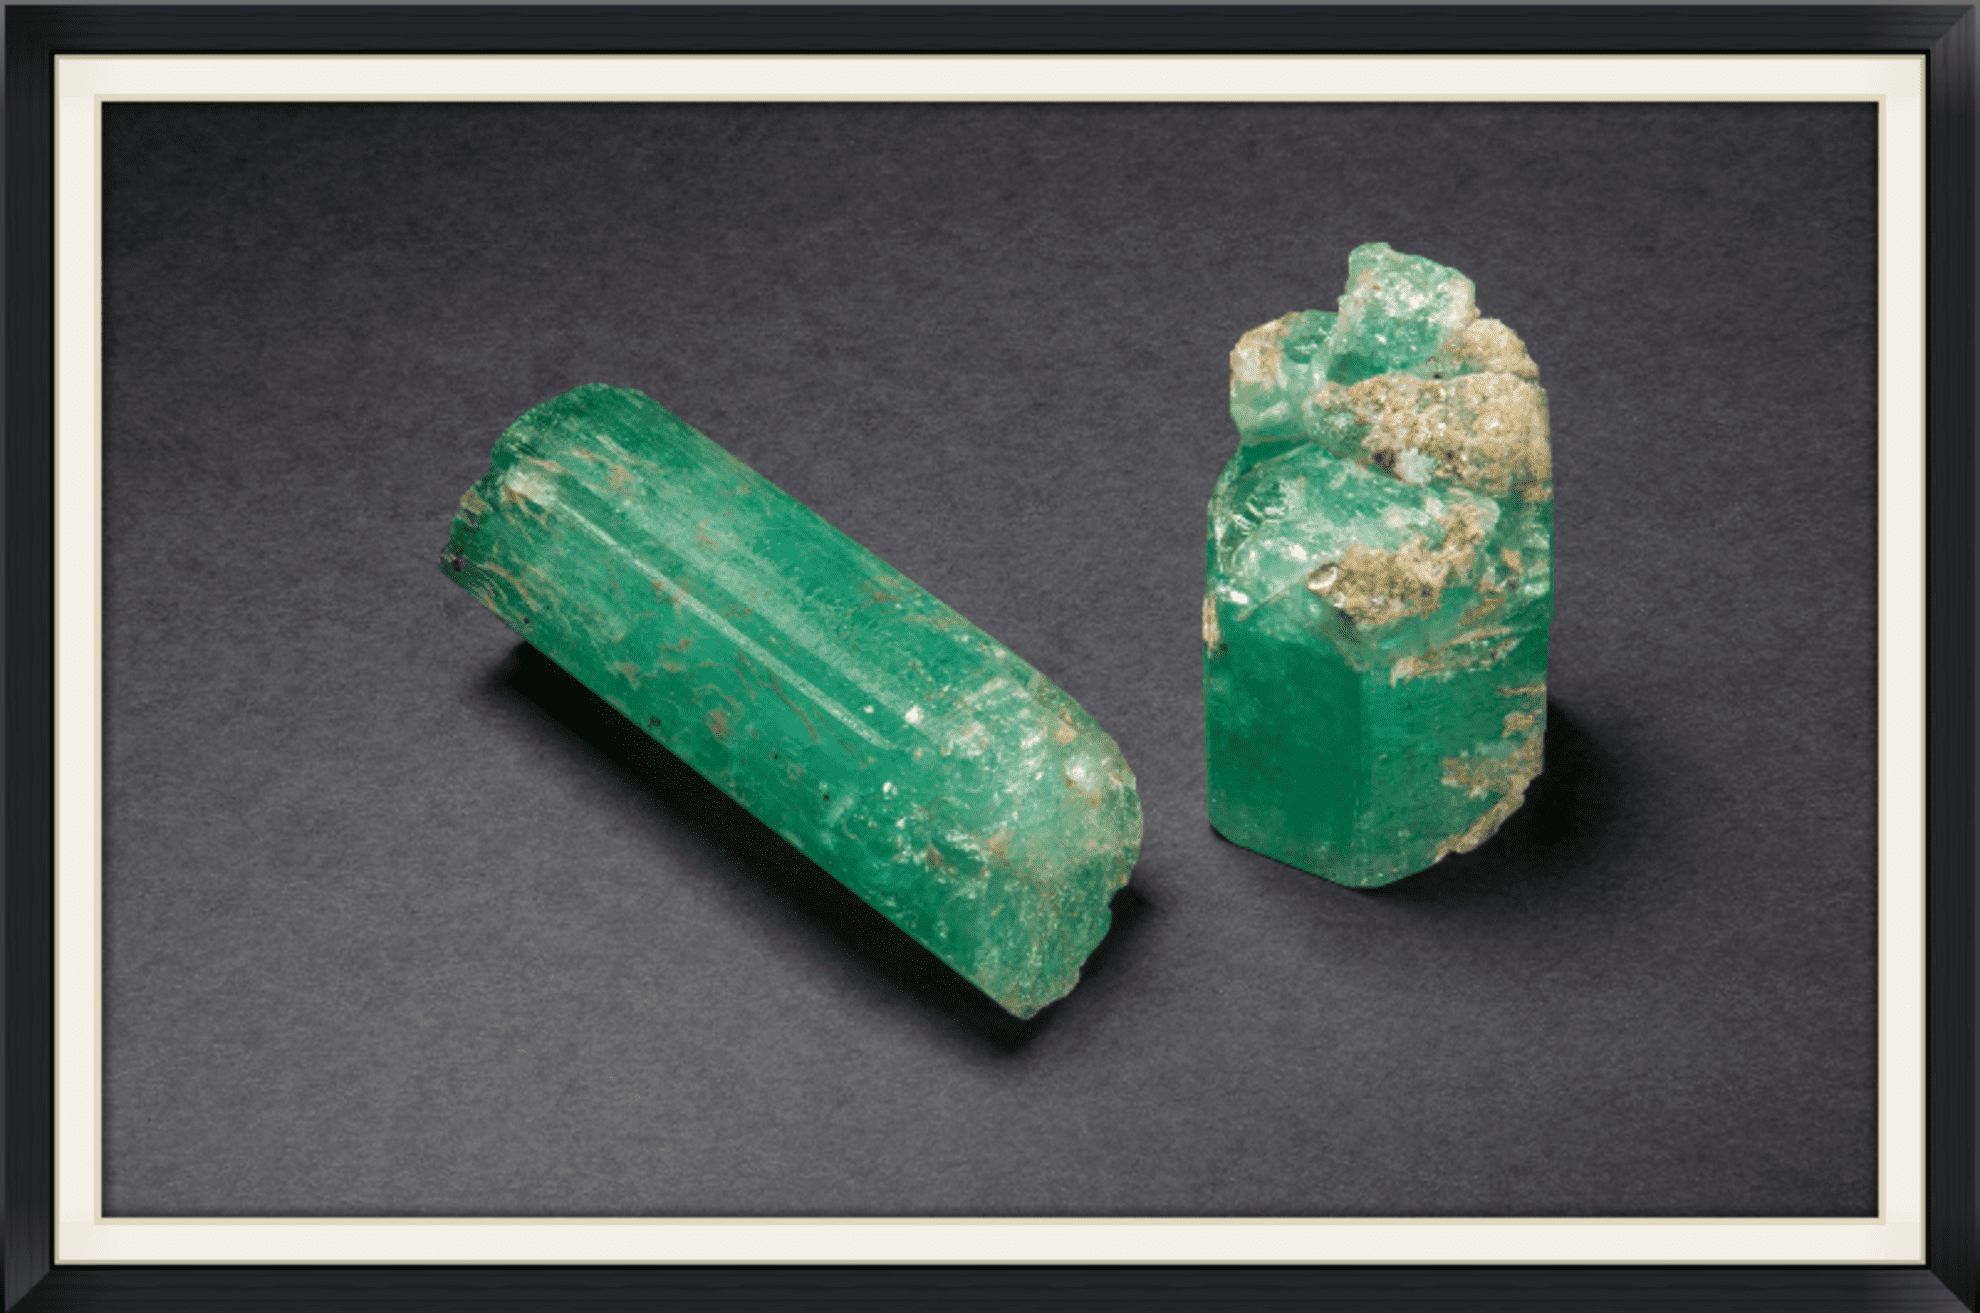 LKA and Stephenson - largest emeralds